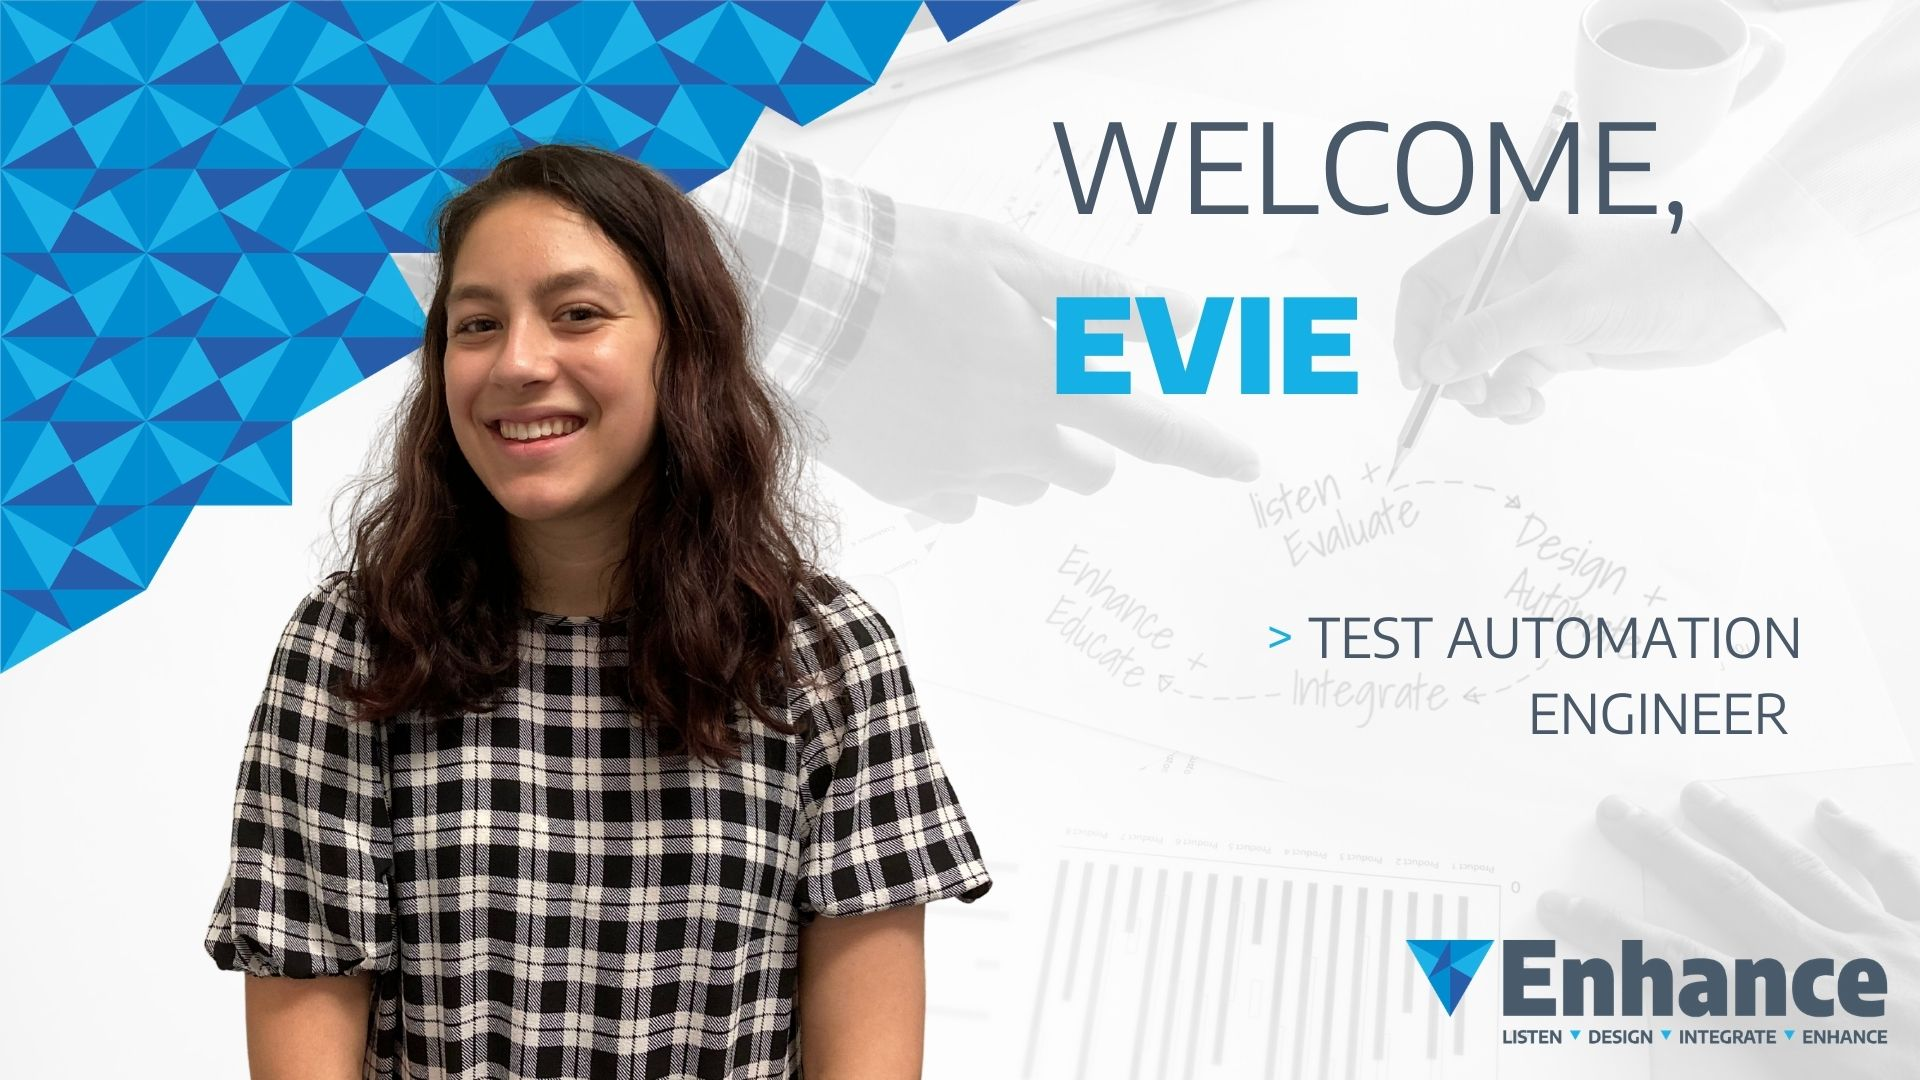 Evie Randall is one of the newest test automation engineers at Enhance Consulting in Wellington.